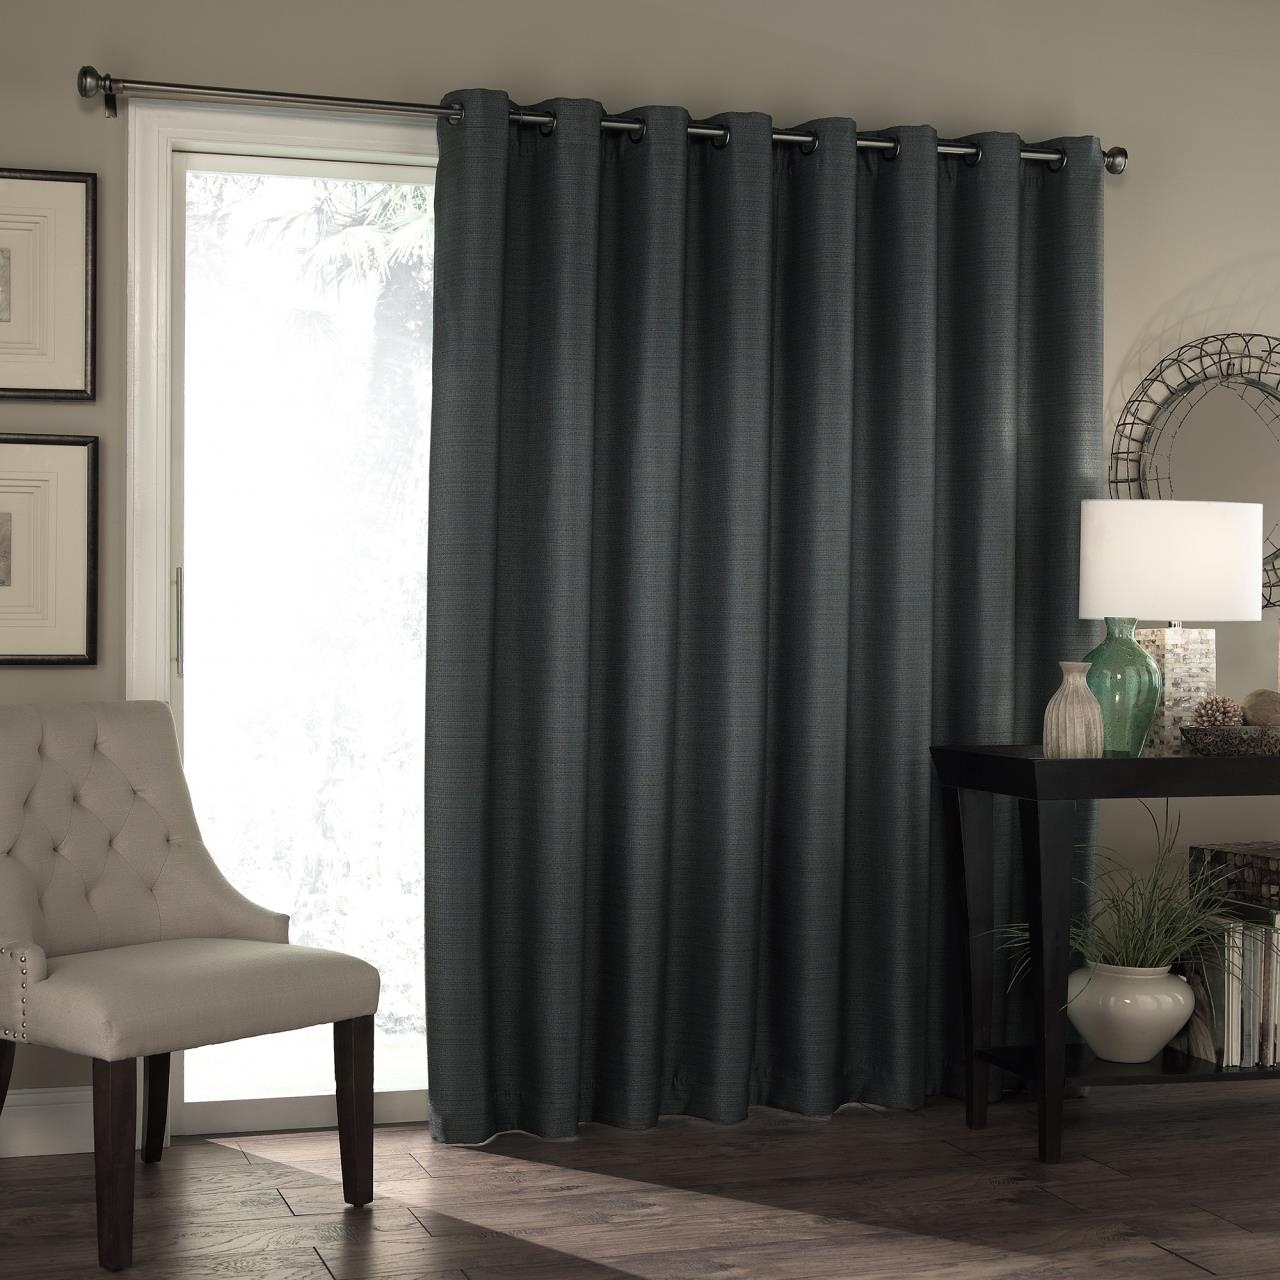 Bryson Thermal Blackout Patio Door Panel - 885308375599 - Eclipse Bryson Thermal Blackout Patio Door PanePaul's Home Fashions